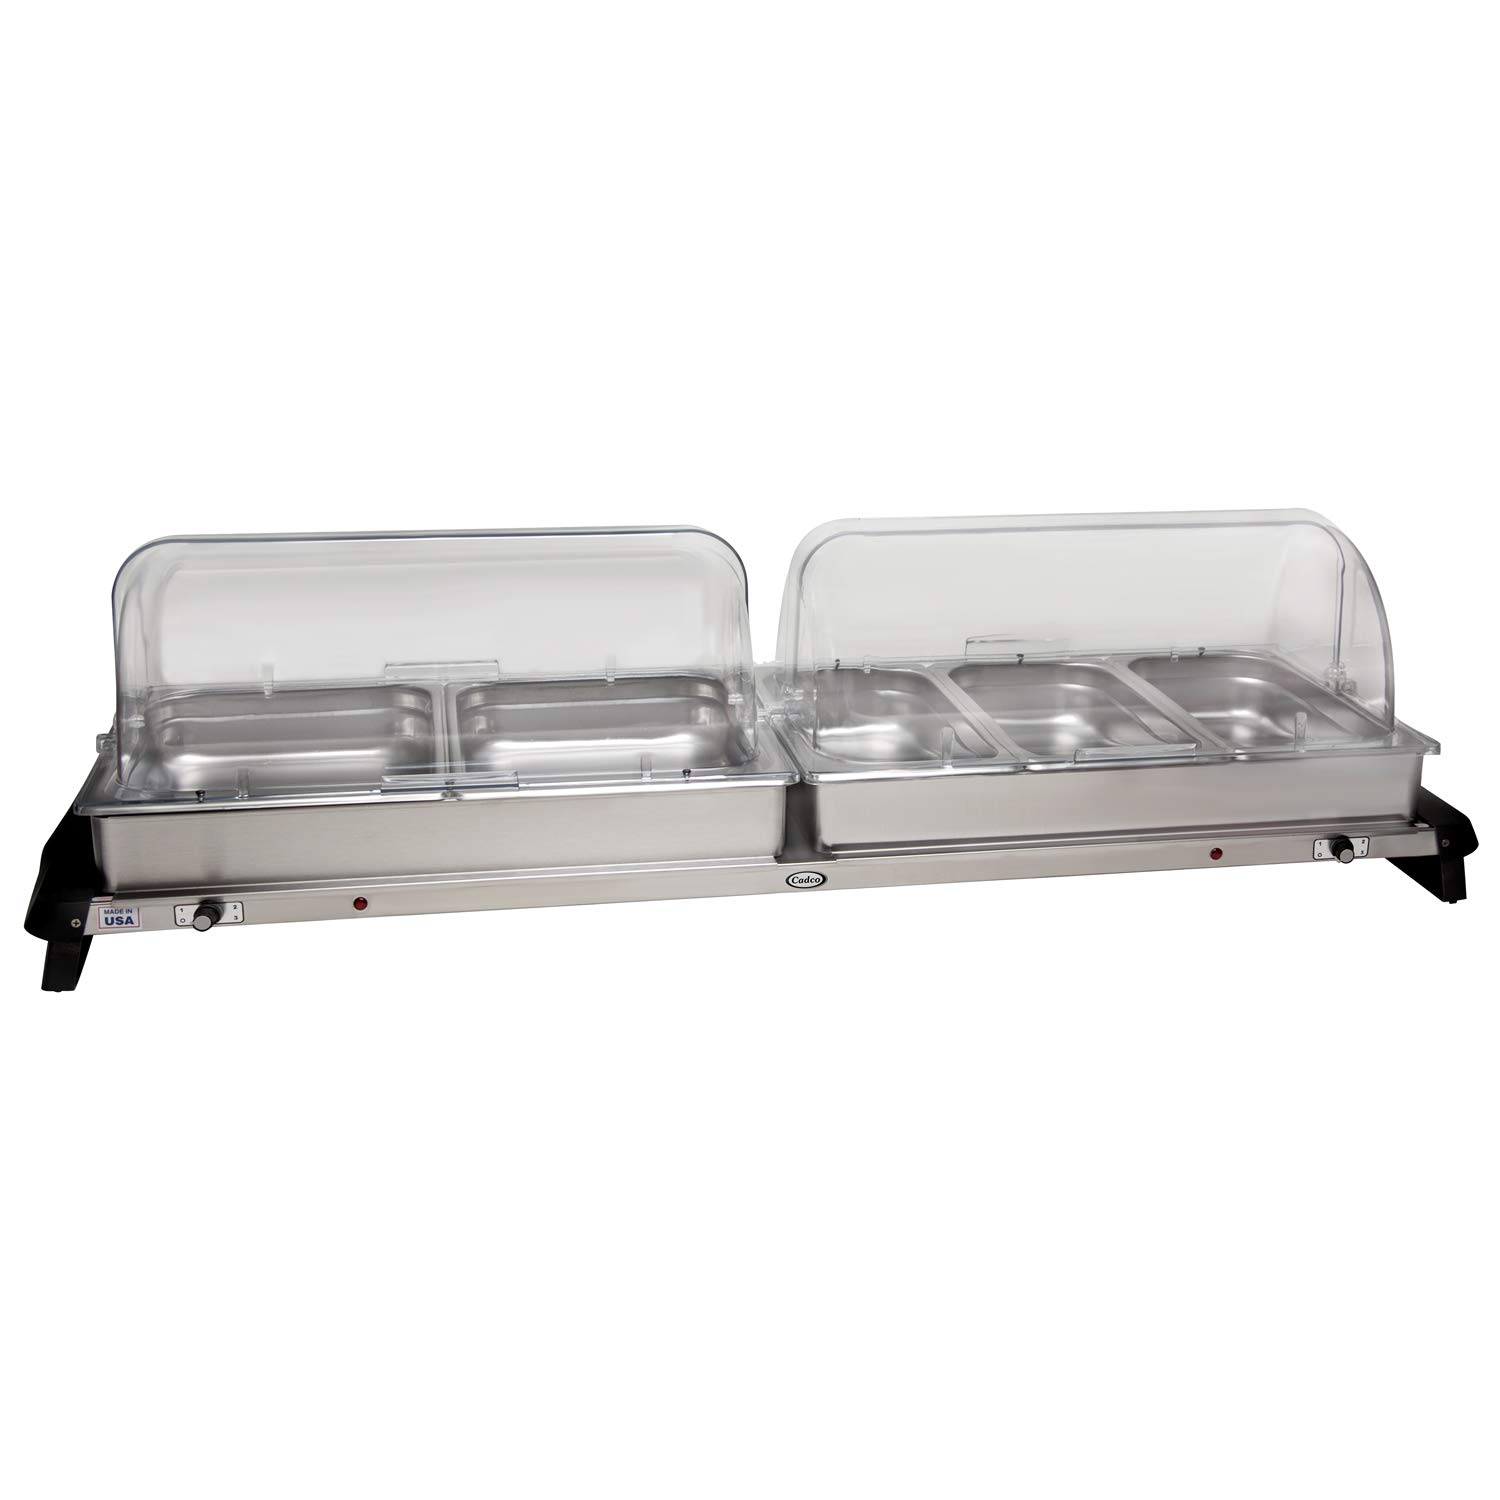 Cadco S/S Double Buffet Server w/ Roll Top Lid, WTBS-2RT